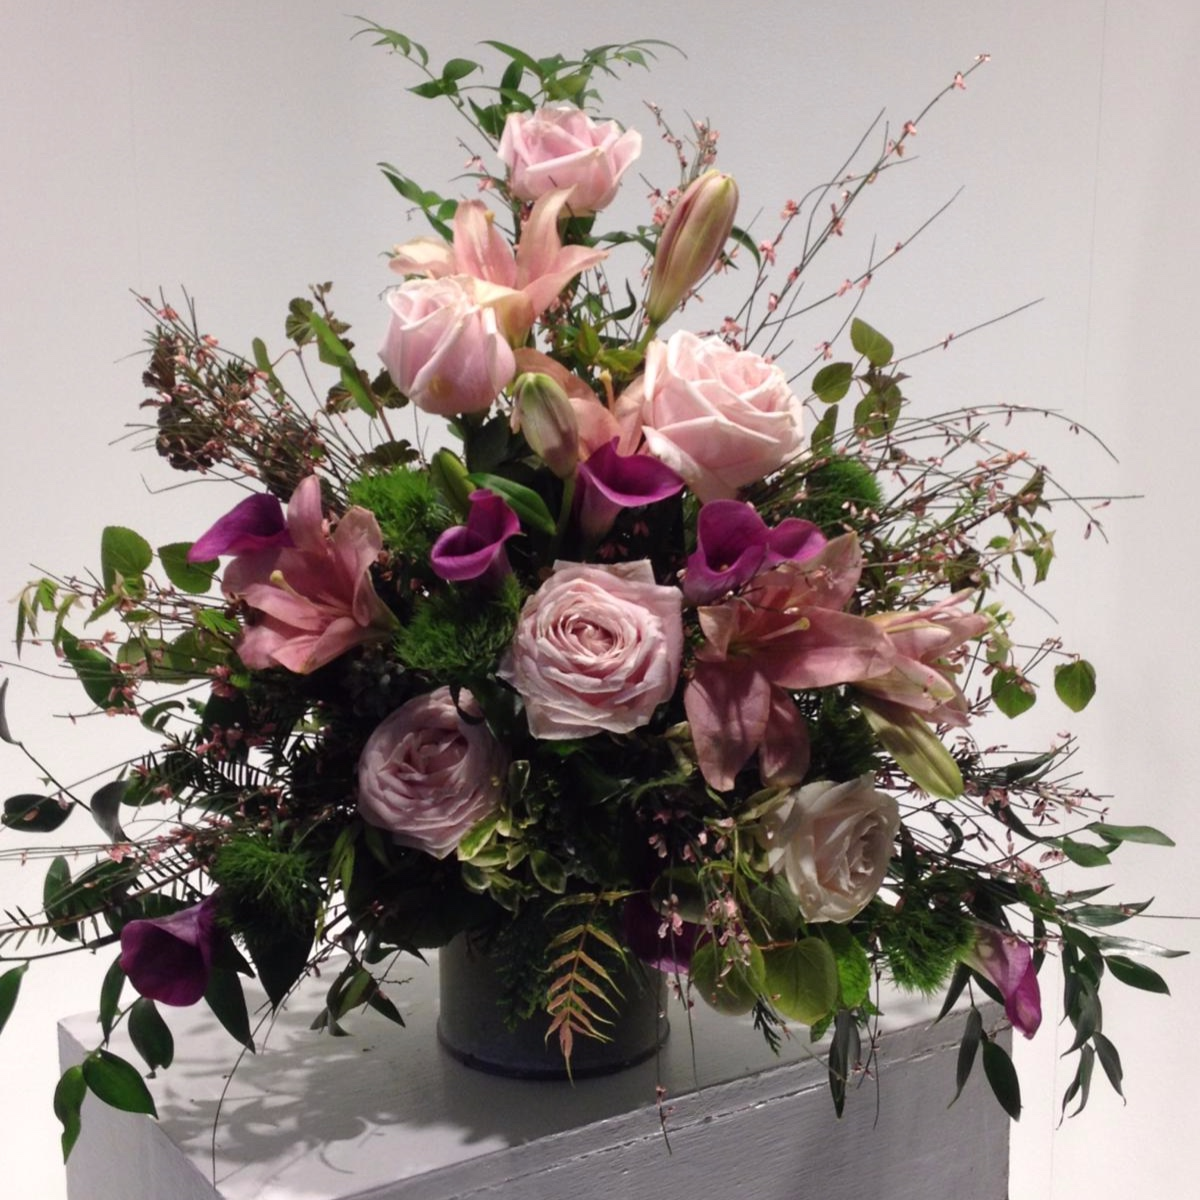 Table Arrangements - Weddings, birthdays, parties - we can create table arrangements for any event, or even just to brighten up your dining table at home!